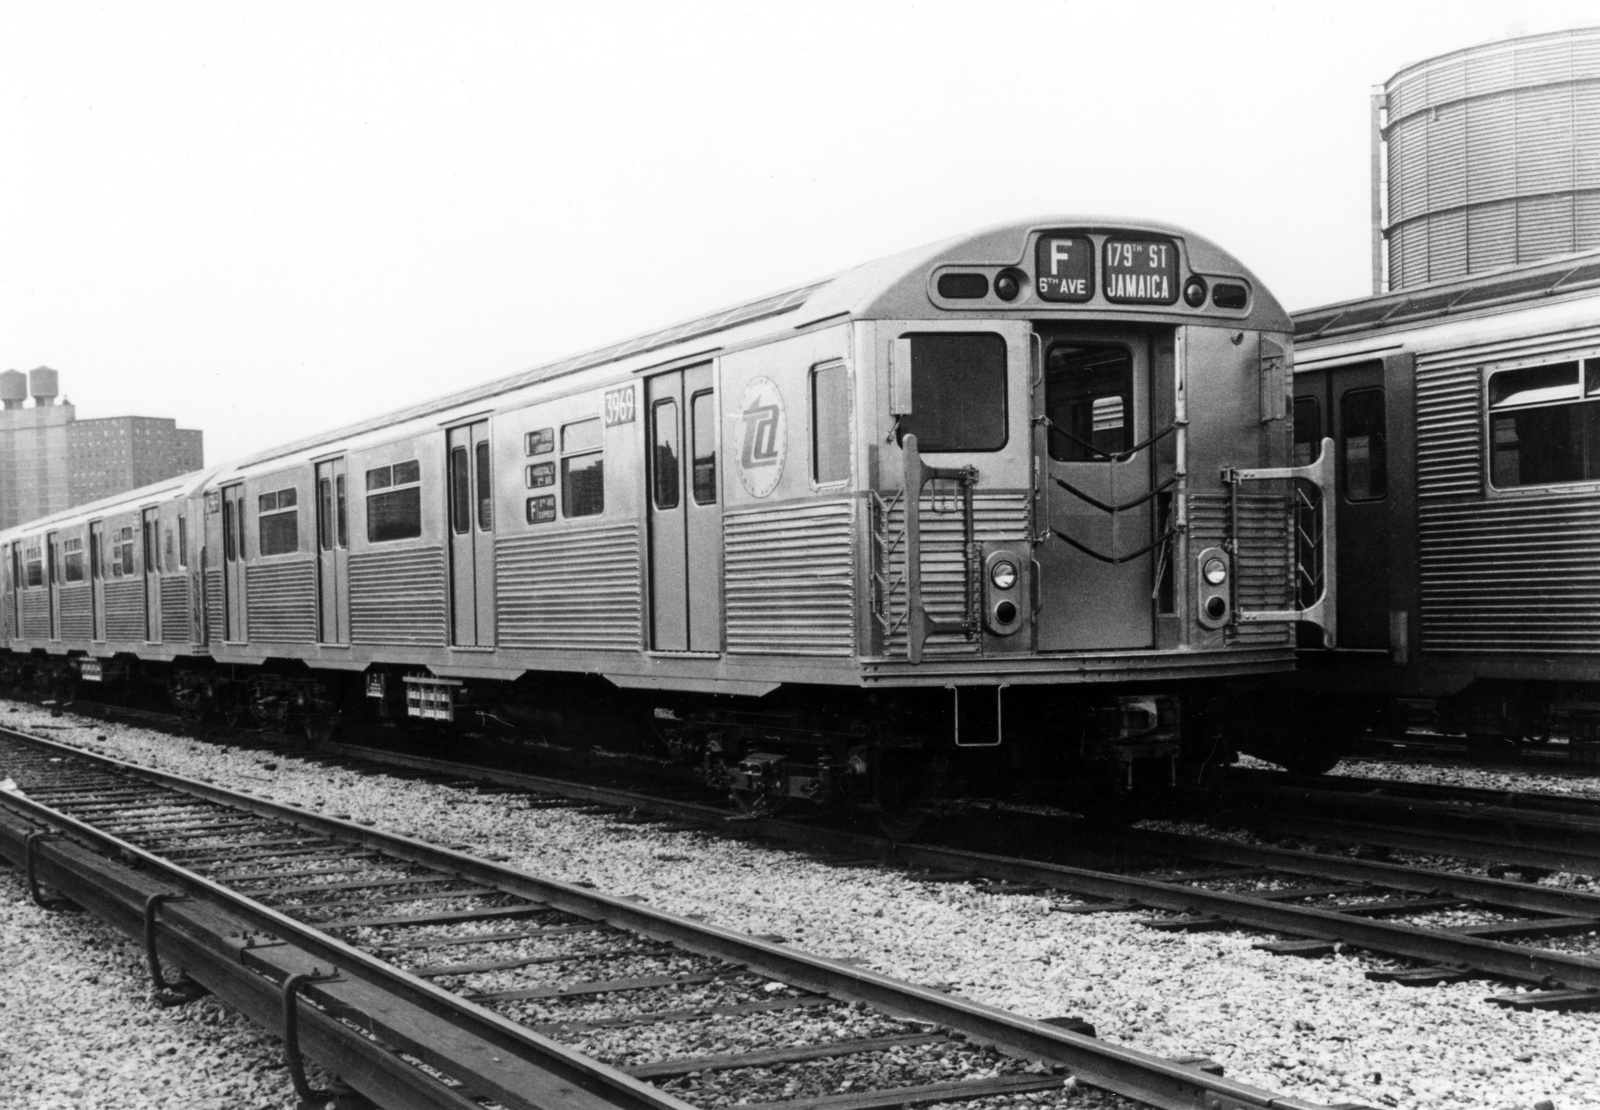 (273k, 1024x812)<br><b>Country:</b> United States<br><b>City:</b> New York<br><b>System:</b> New York City Transit<br><b>Location:</b> Coney Island Yard<br><b>Car:</b> R-38 (St. Louis, 1966-1967)  3969 <br><b>Photo by:</b> Ed Watson/Arthur Lonto Collection<br><b>Collection of:</b> Frank Pfuhler<br><b>Date:</b> 1966<br><b>Viewed (this week/total):</b> 0 / 379